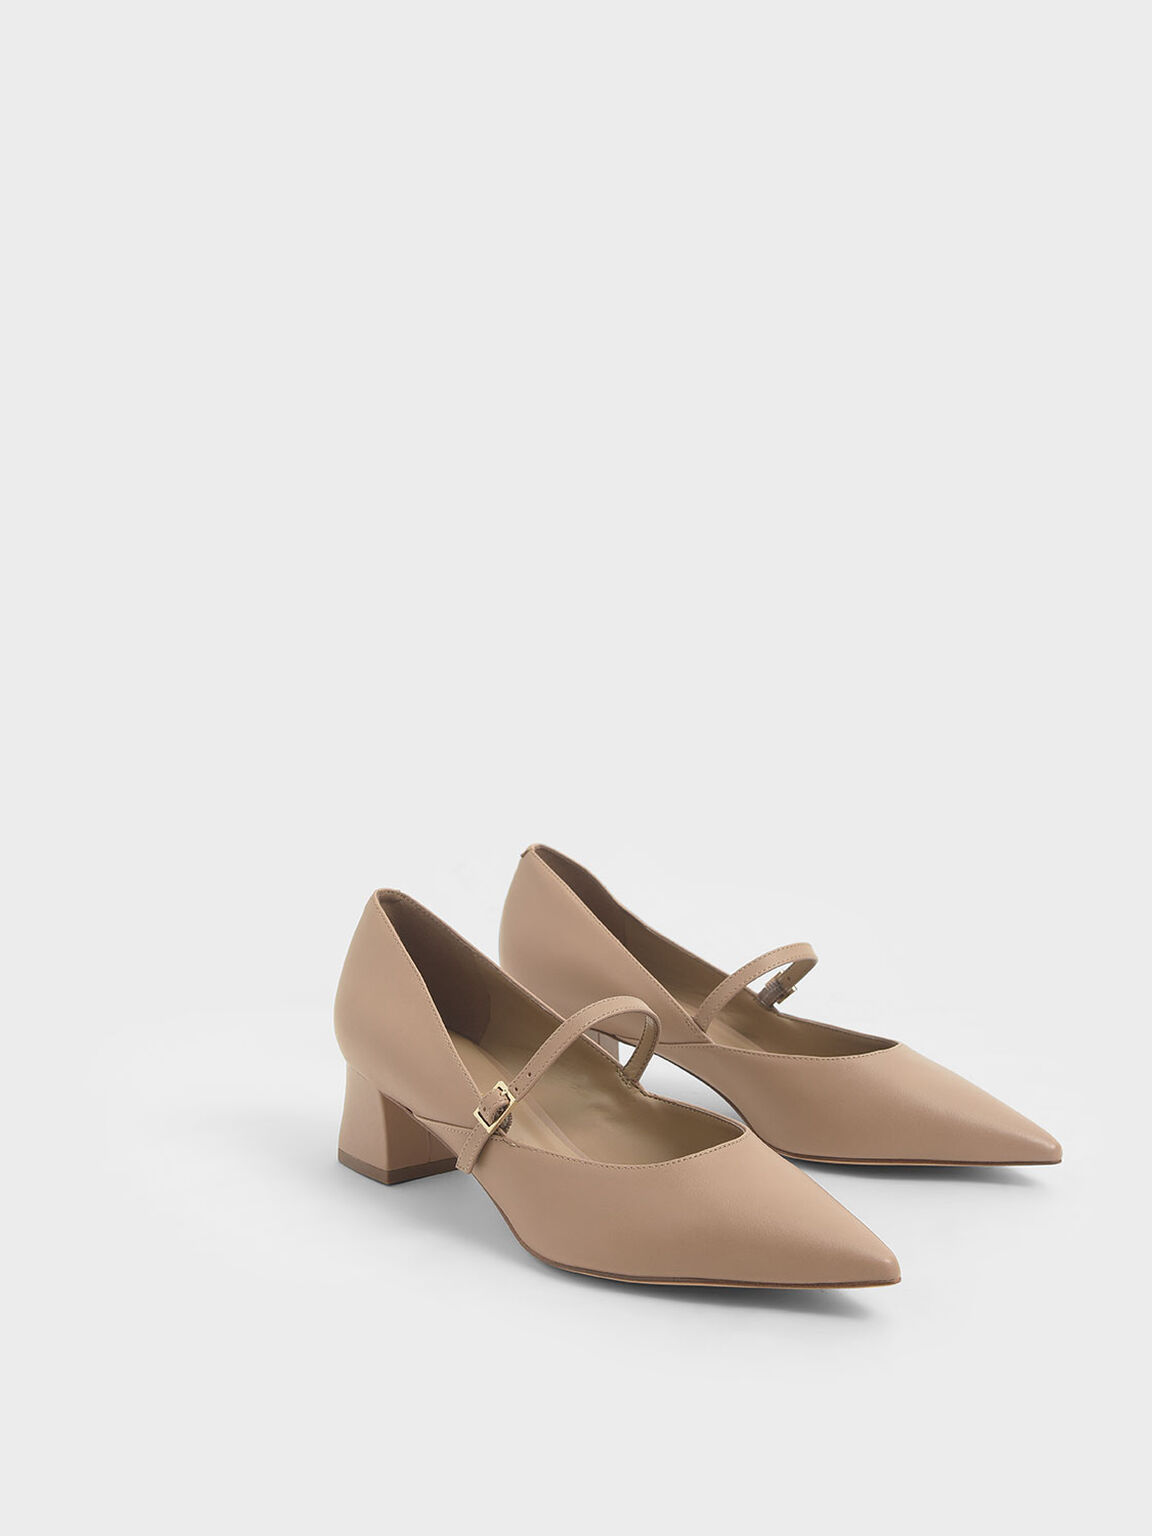 Mary Jane Pumps, Taupe, hi-res